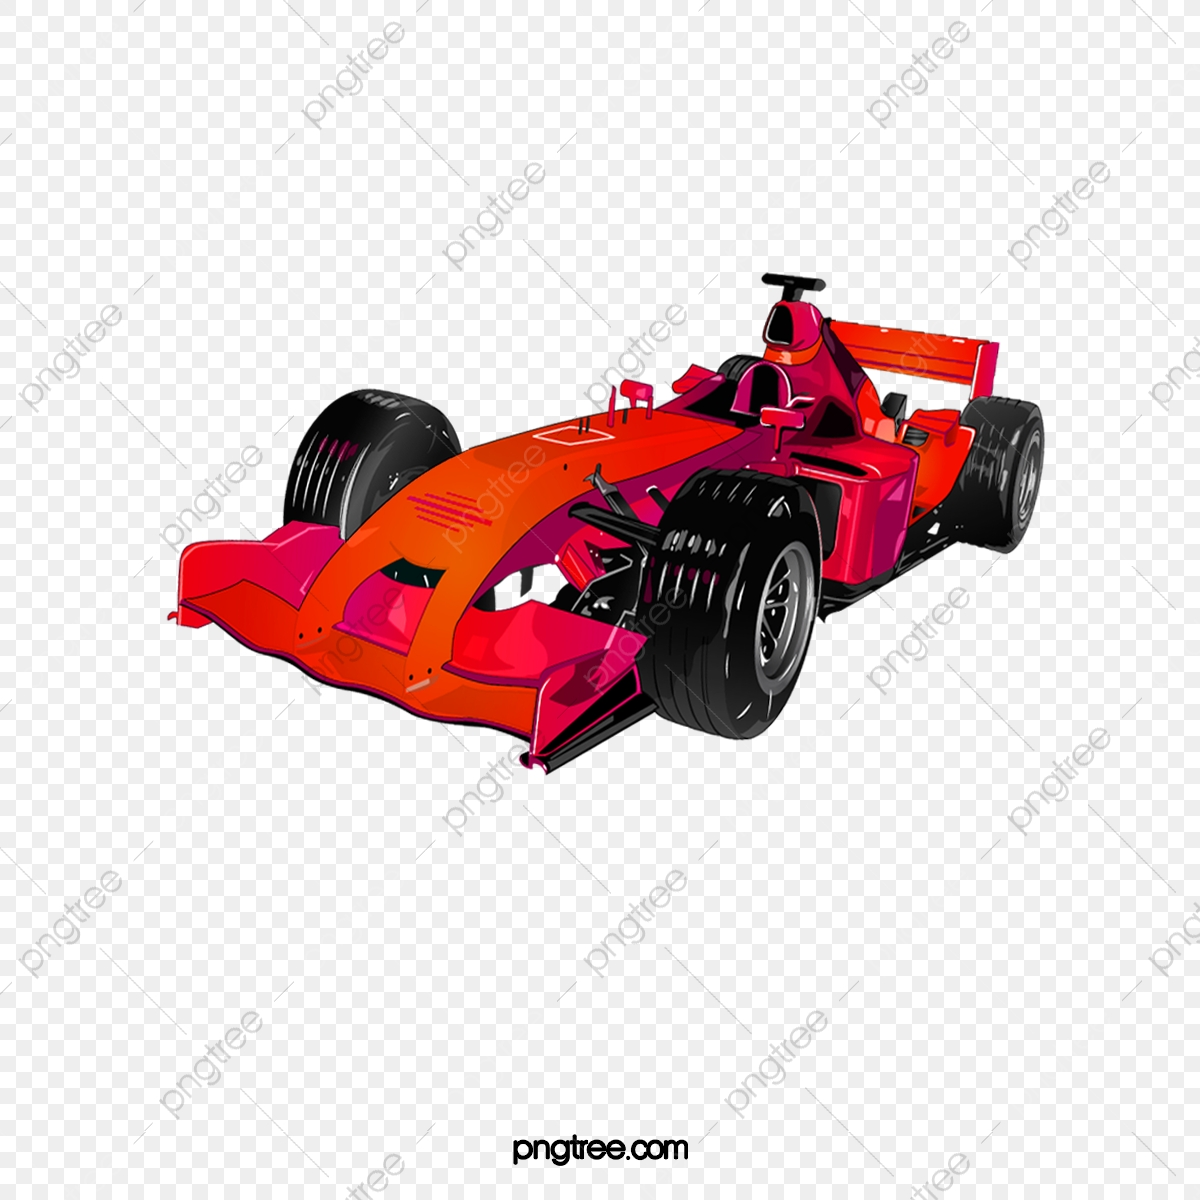 hight resolution of commercial use resource upgrade to premium plan and get license authorization upgradenow toy ferrari racing car car clipart